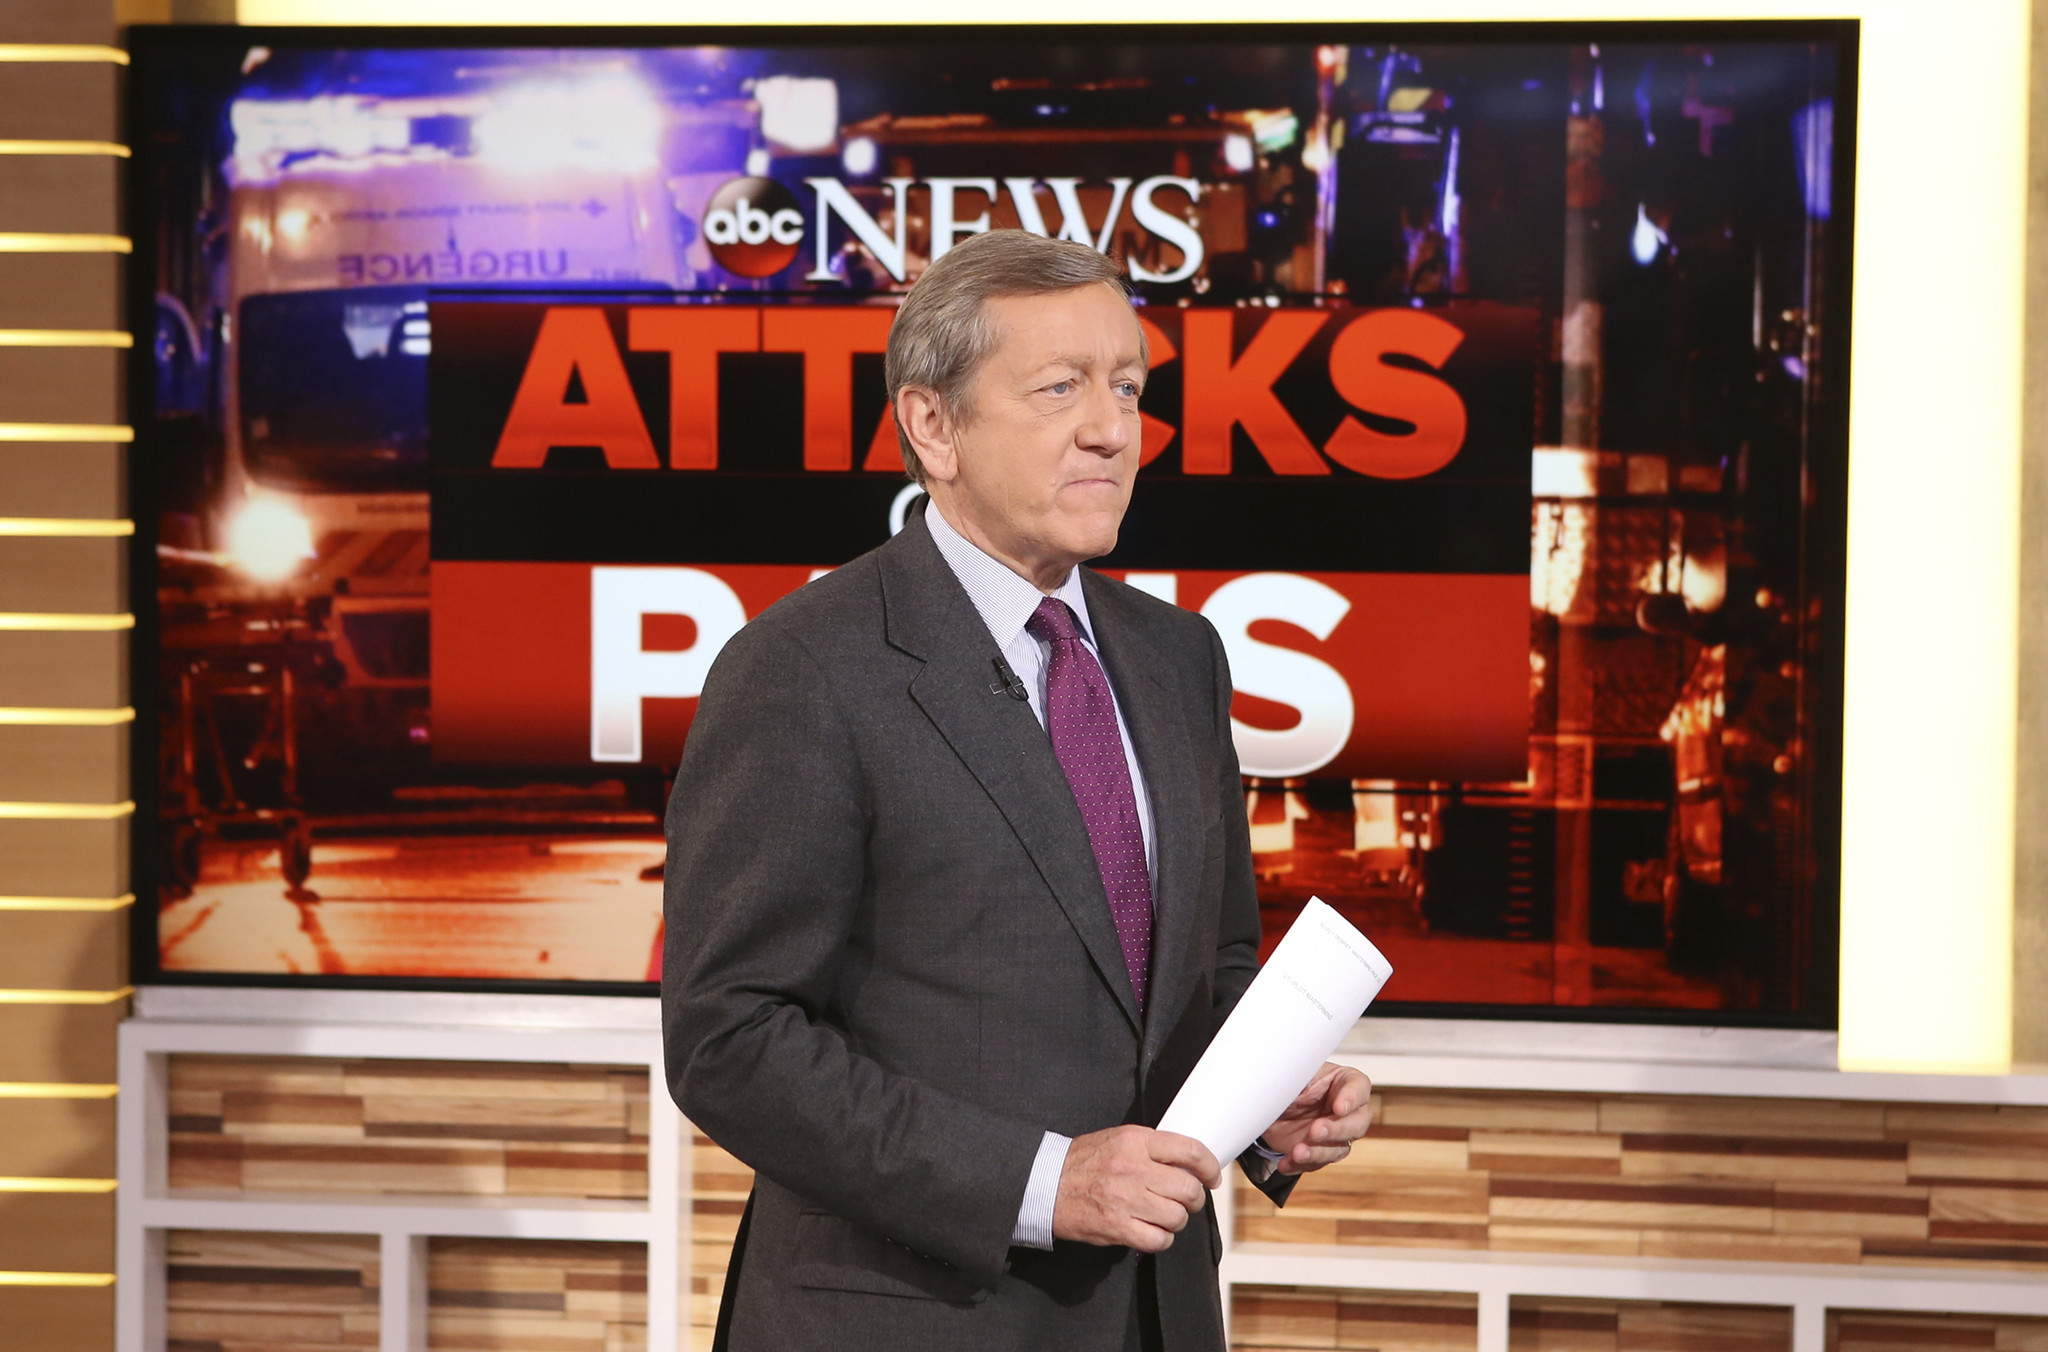 ABC New's Brian Ross Suspended Over Michael Flynn Erroneous Report